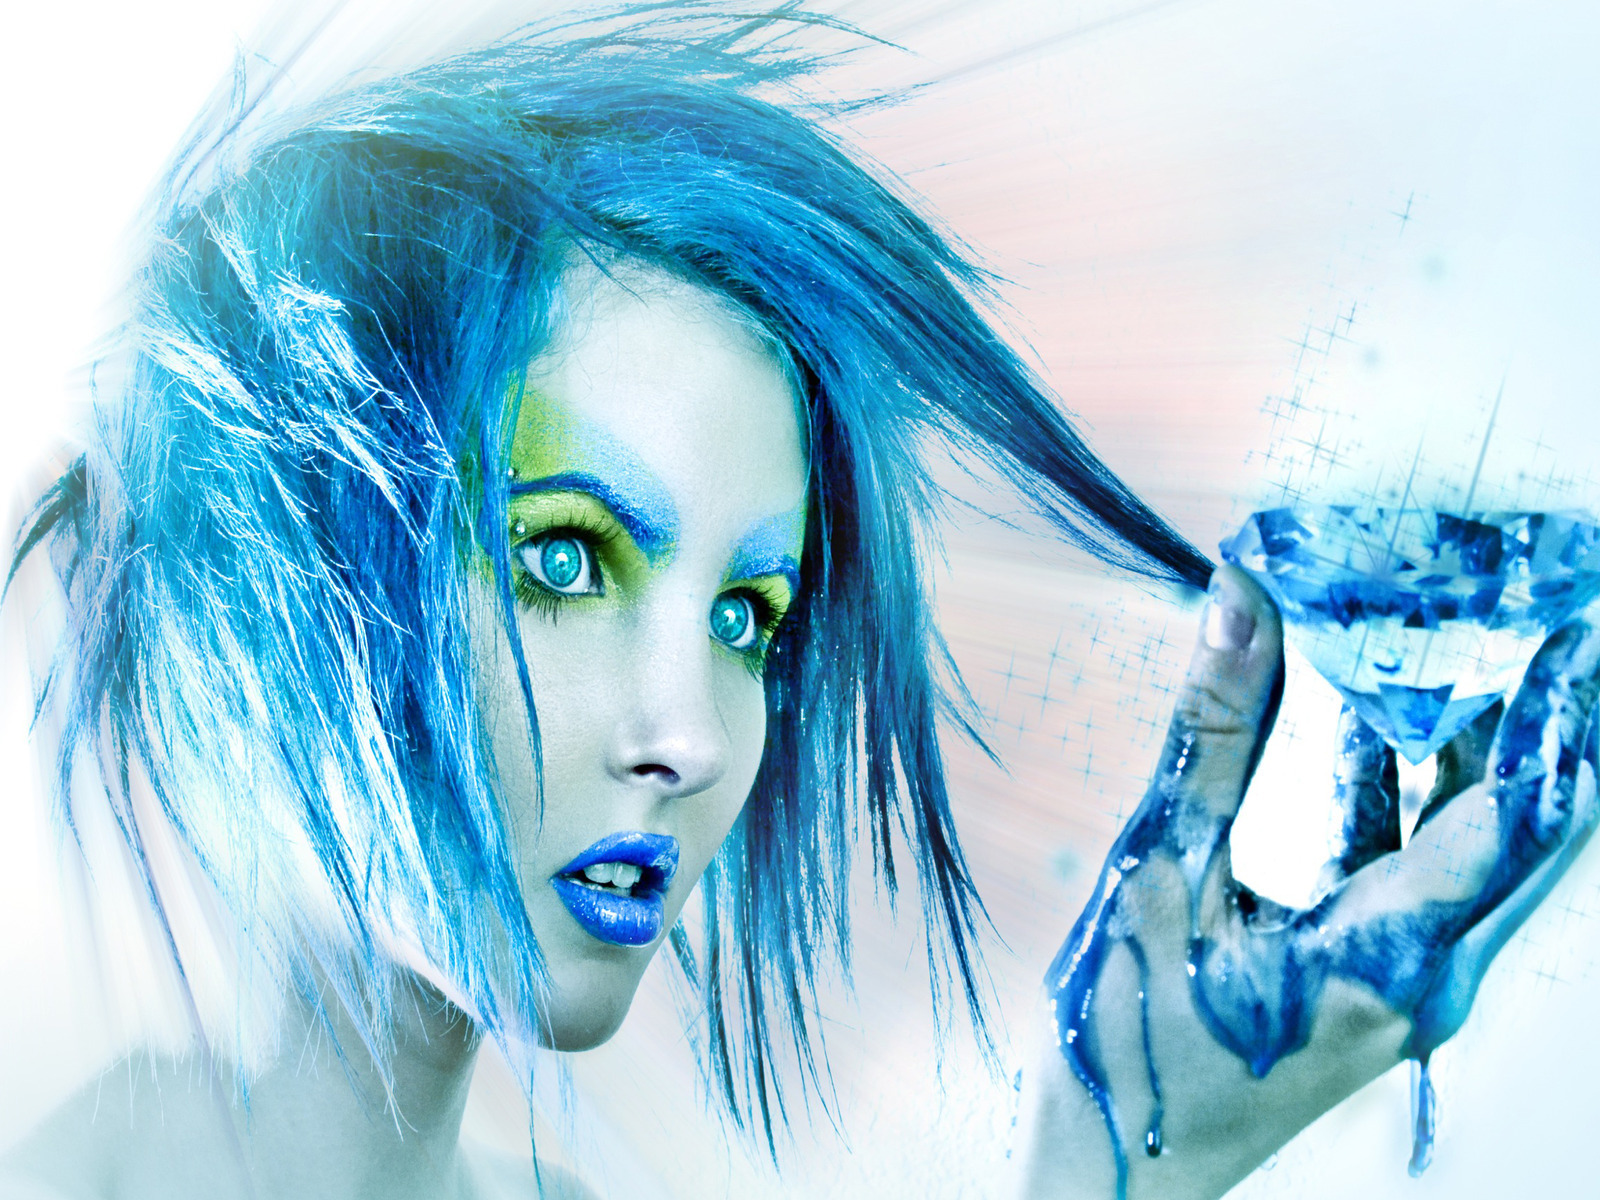 Women blue paint hair HD Wallpaper